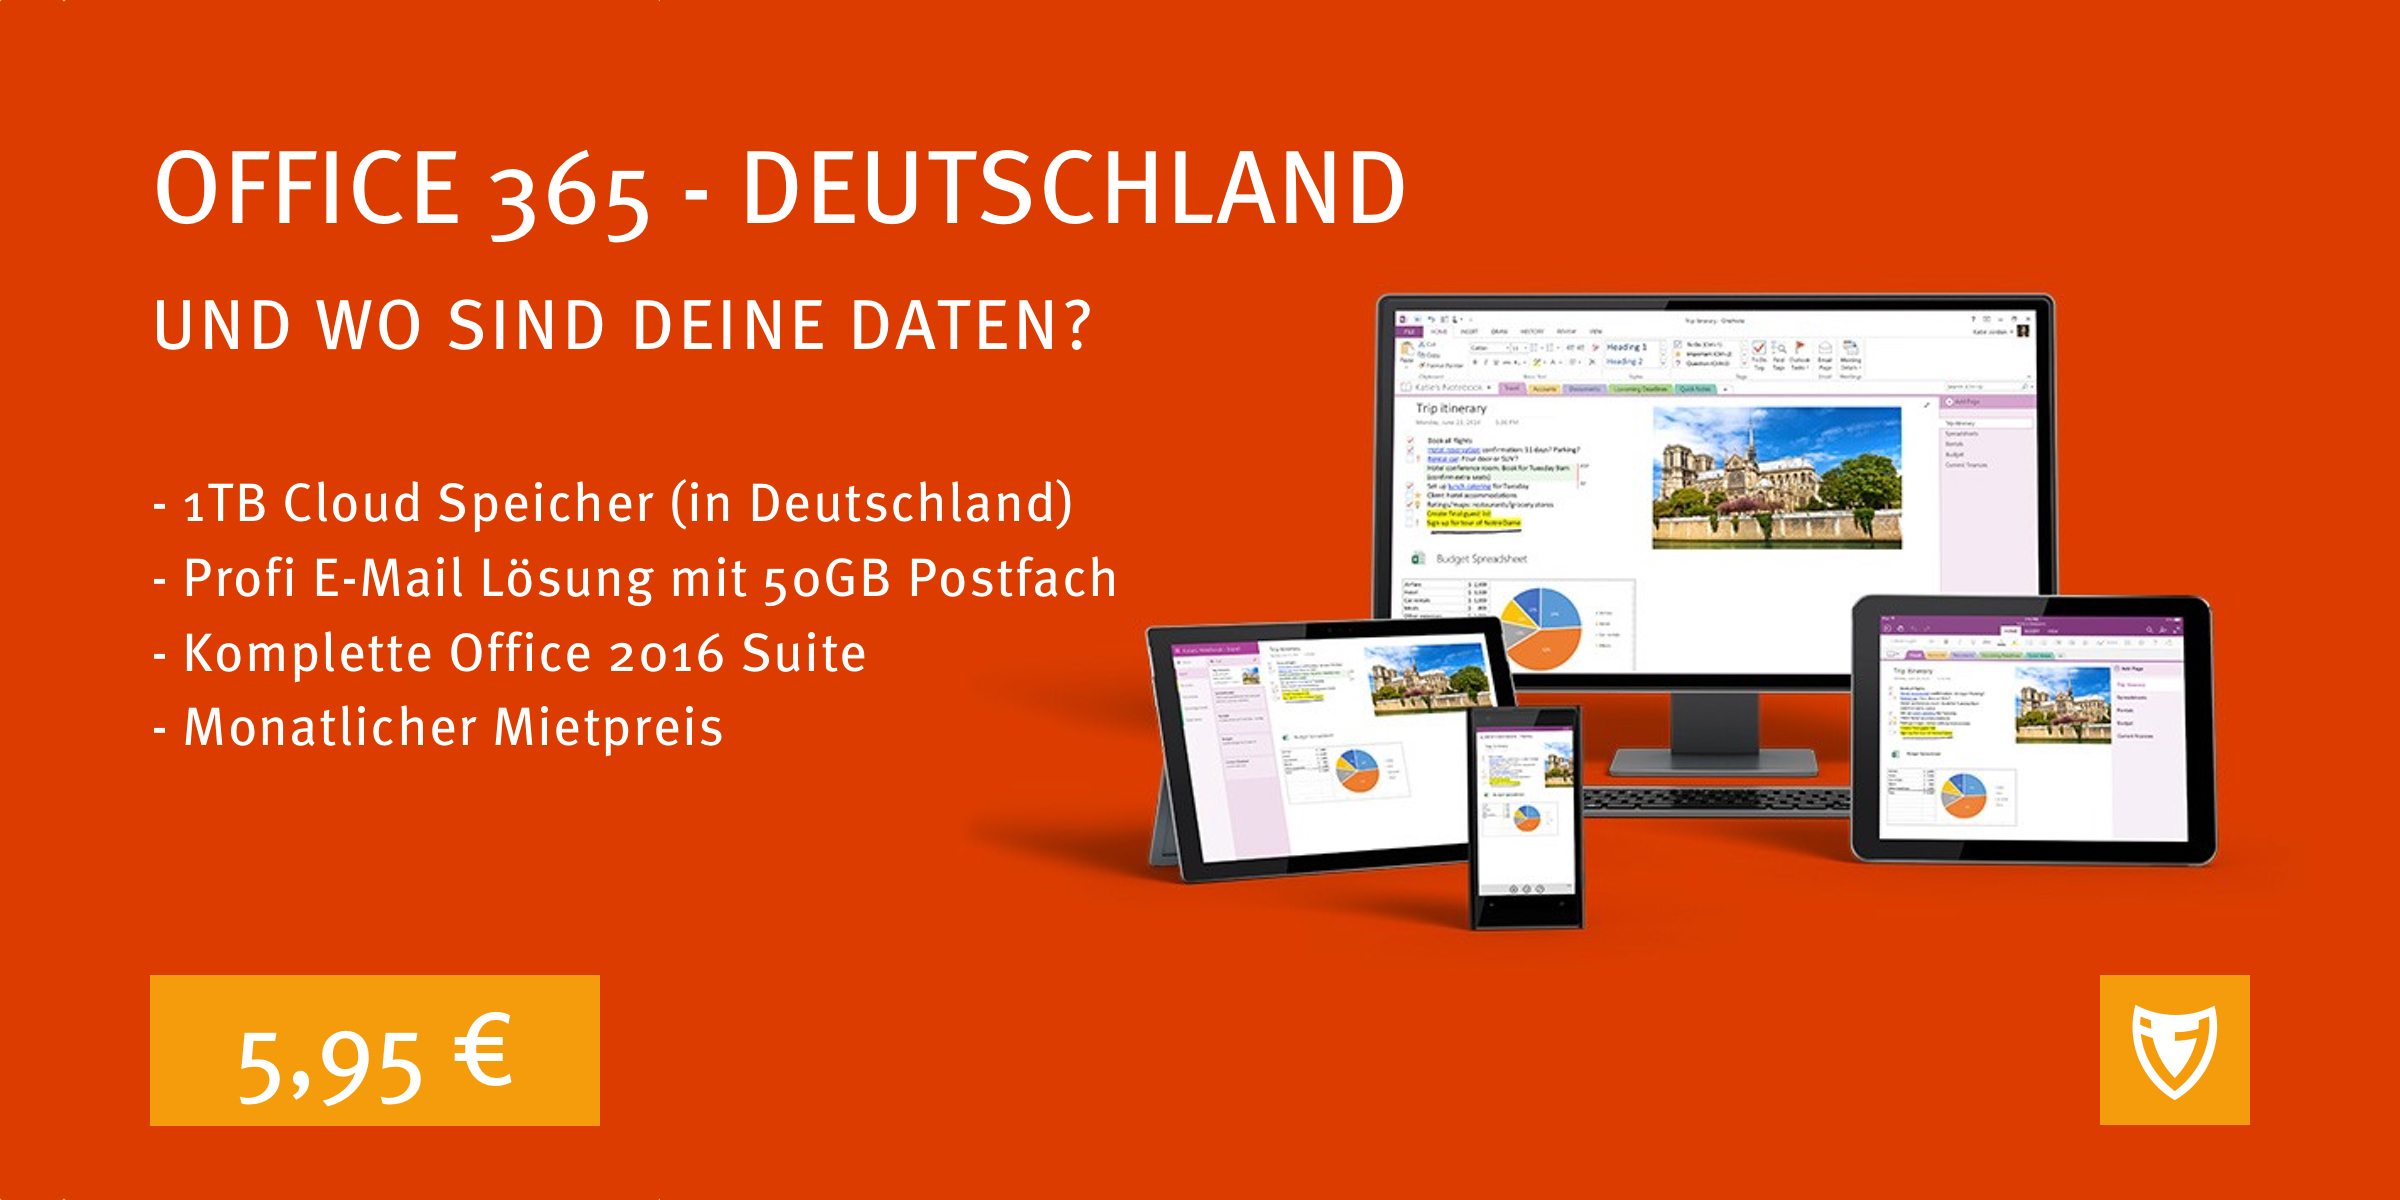 Office 365 Deutschland ??